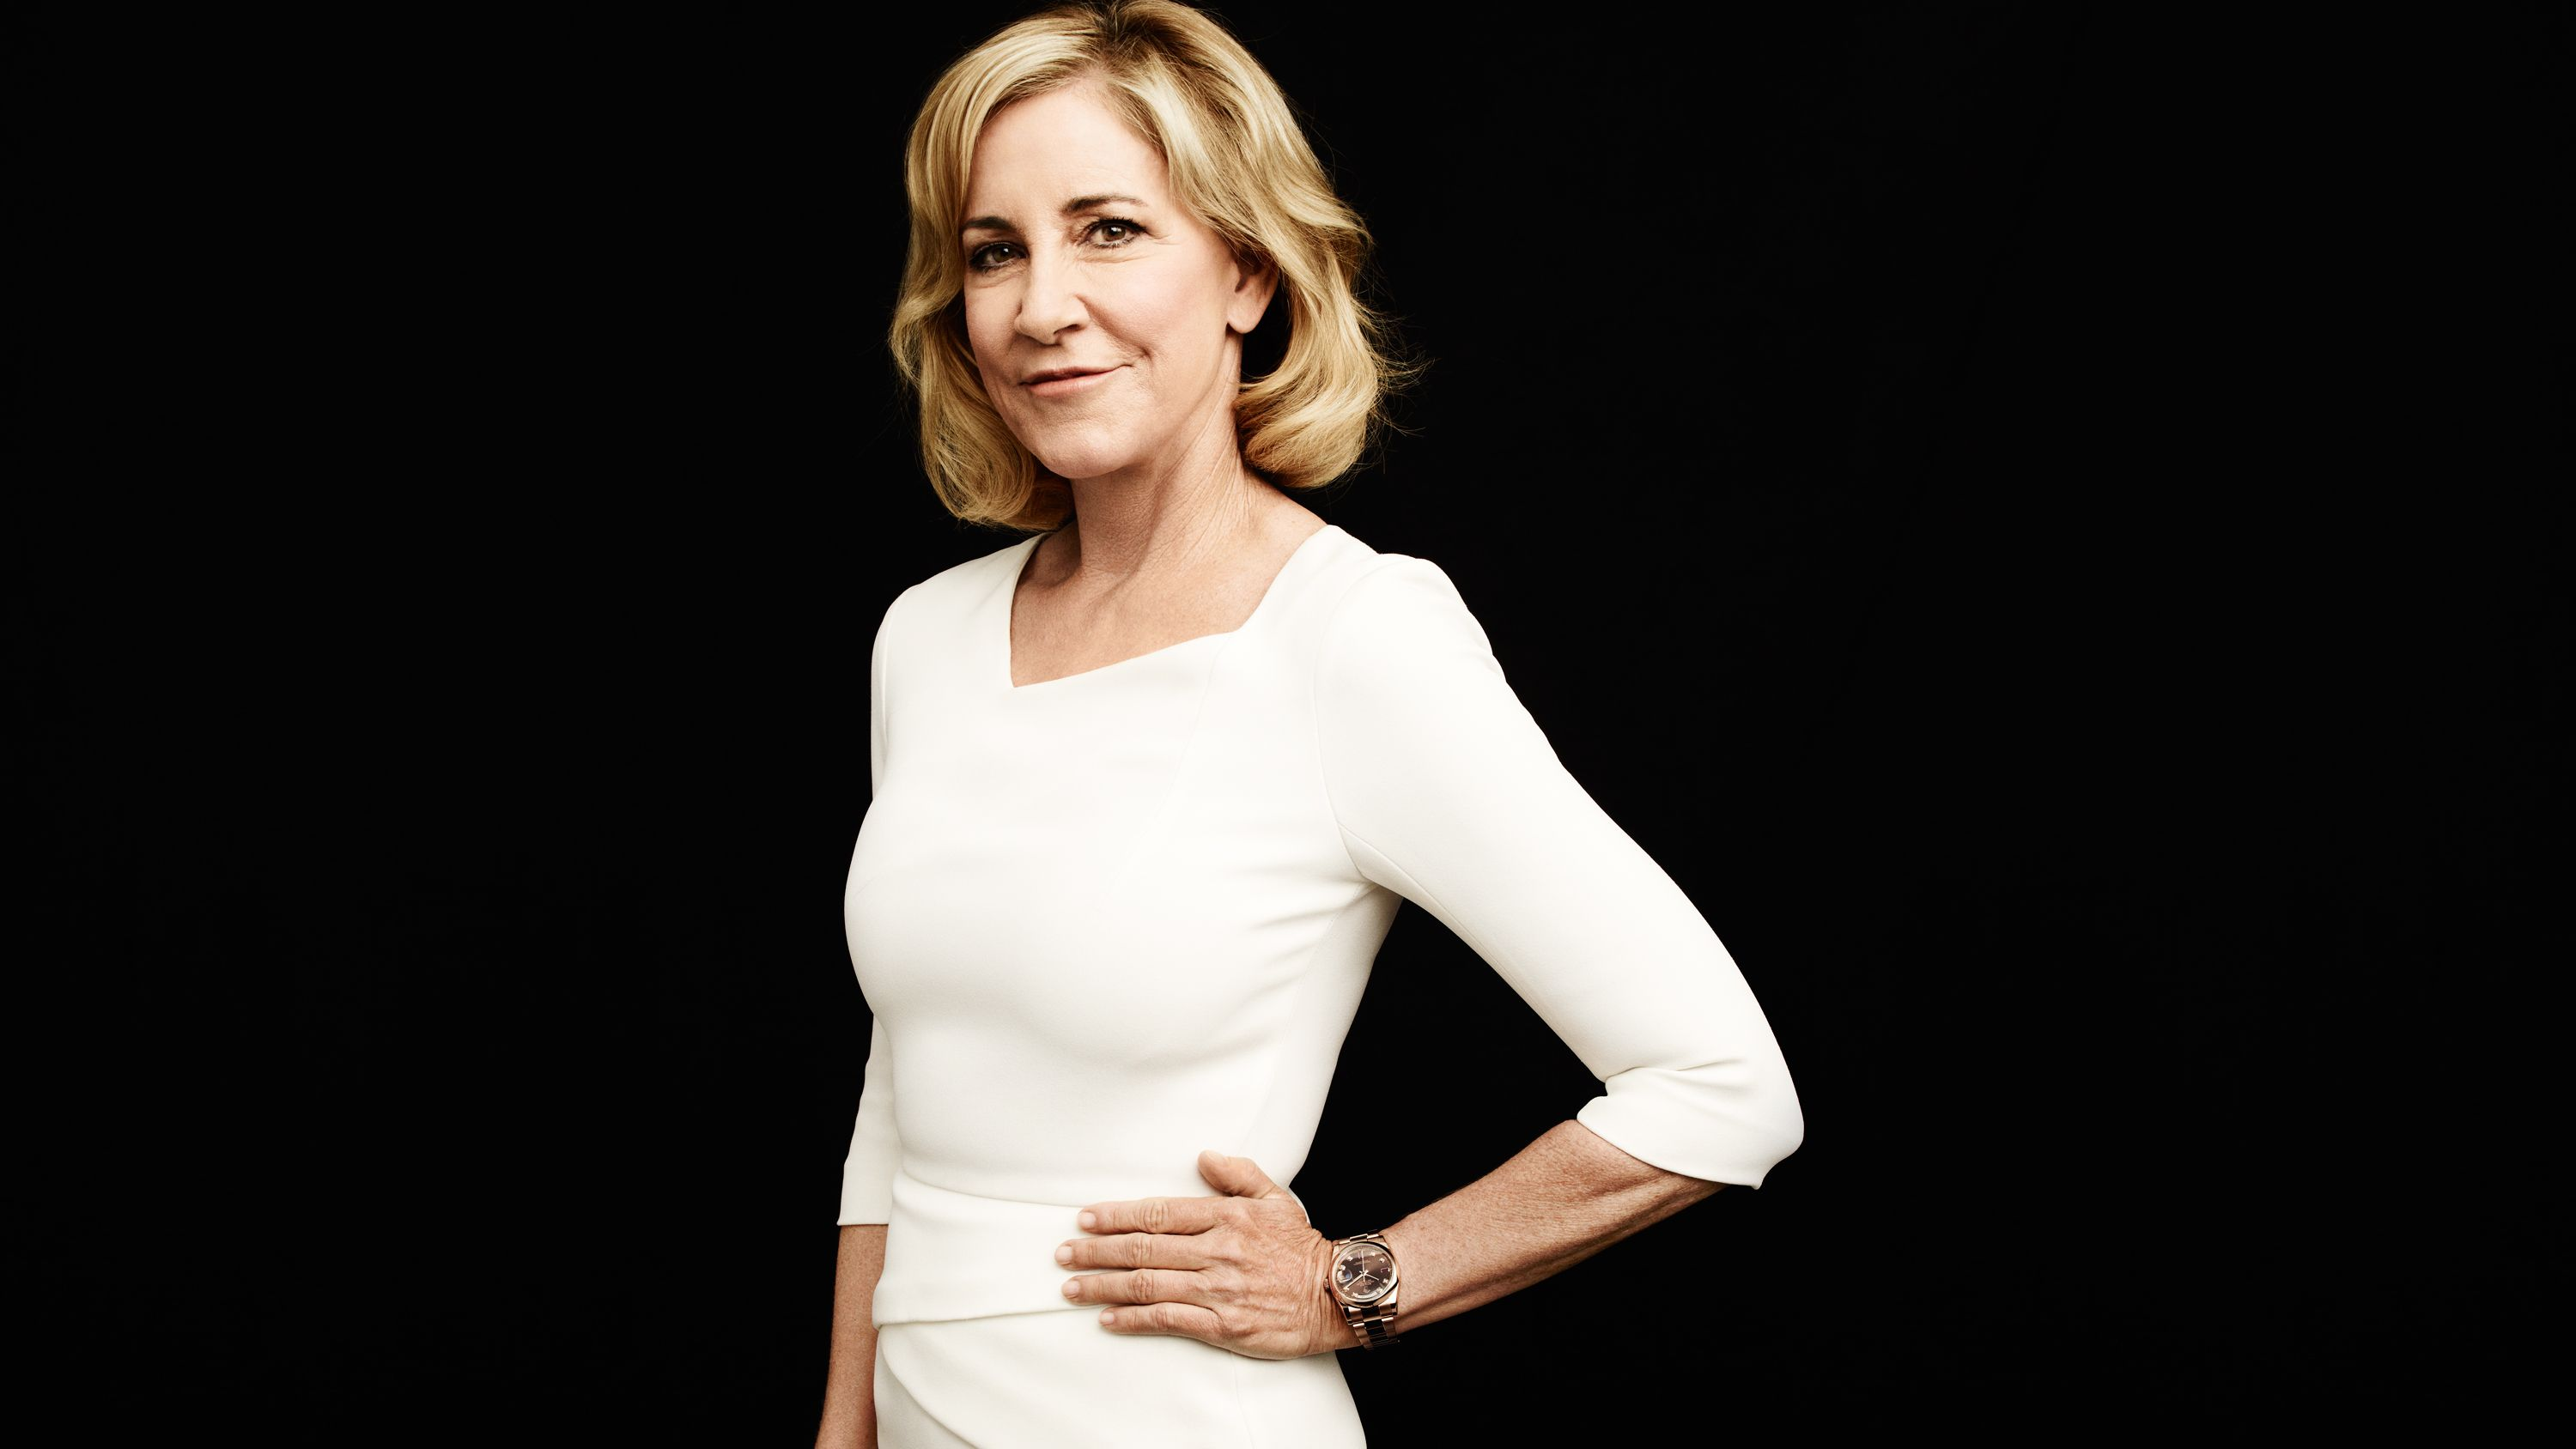 Inspiring Stories Chris Evert